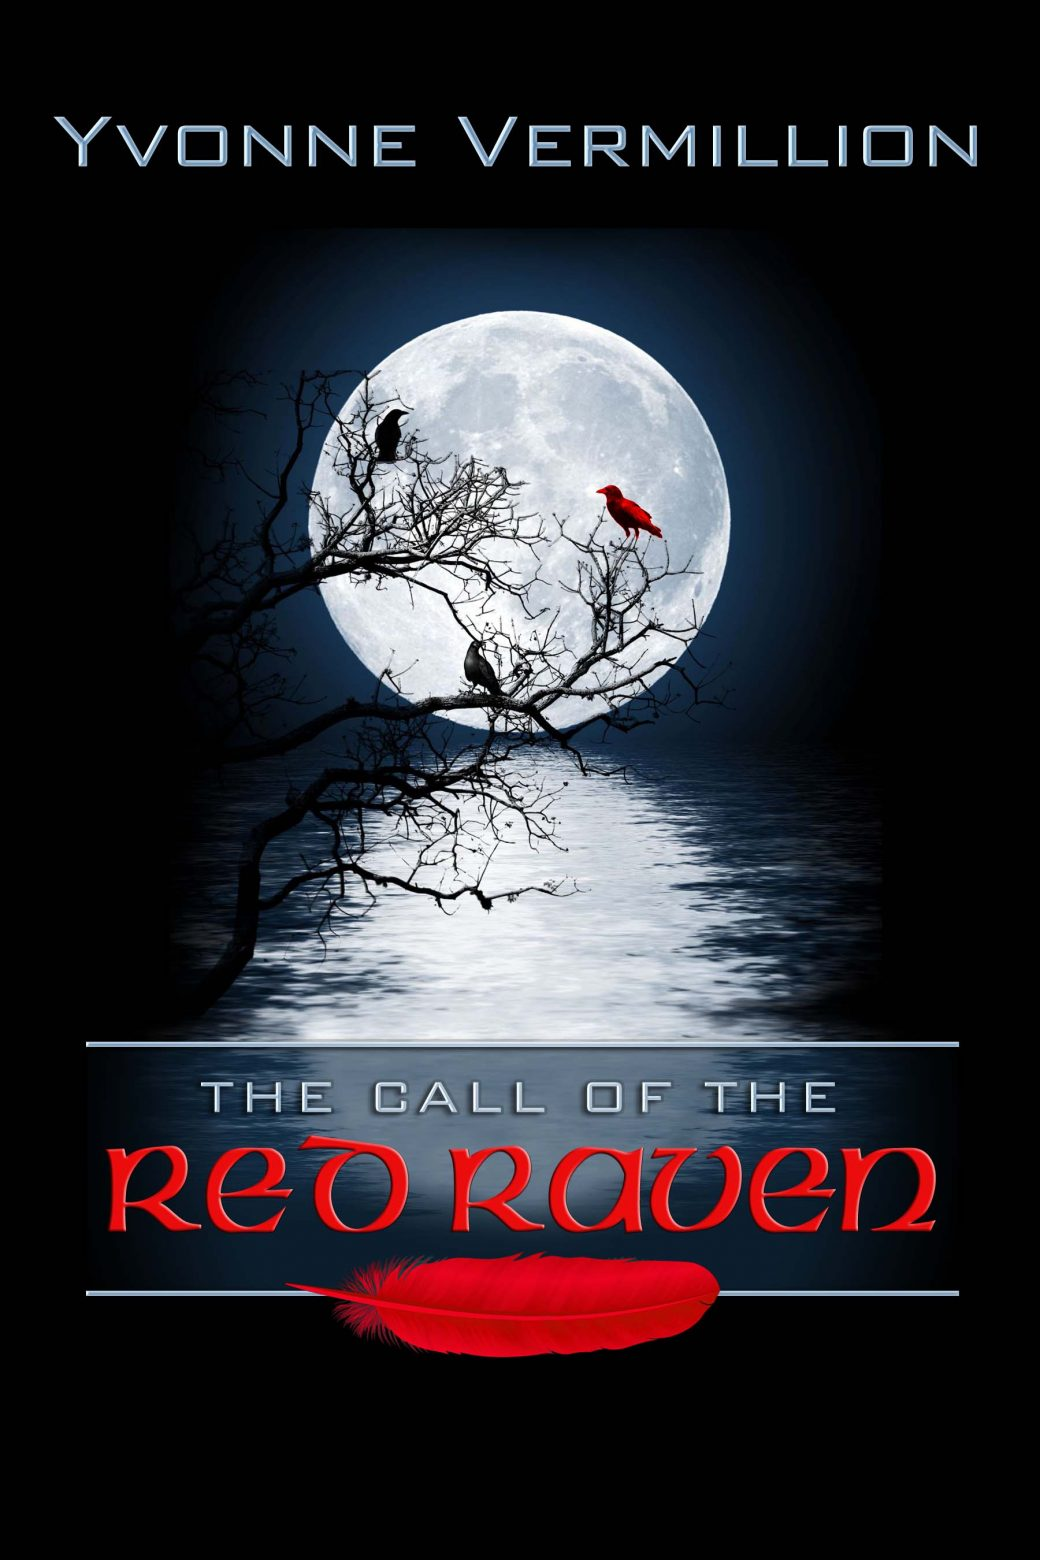 CALL OF THE RED RAVEN